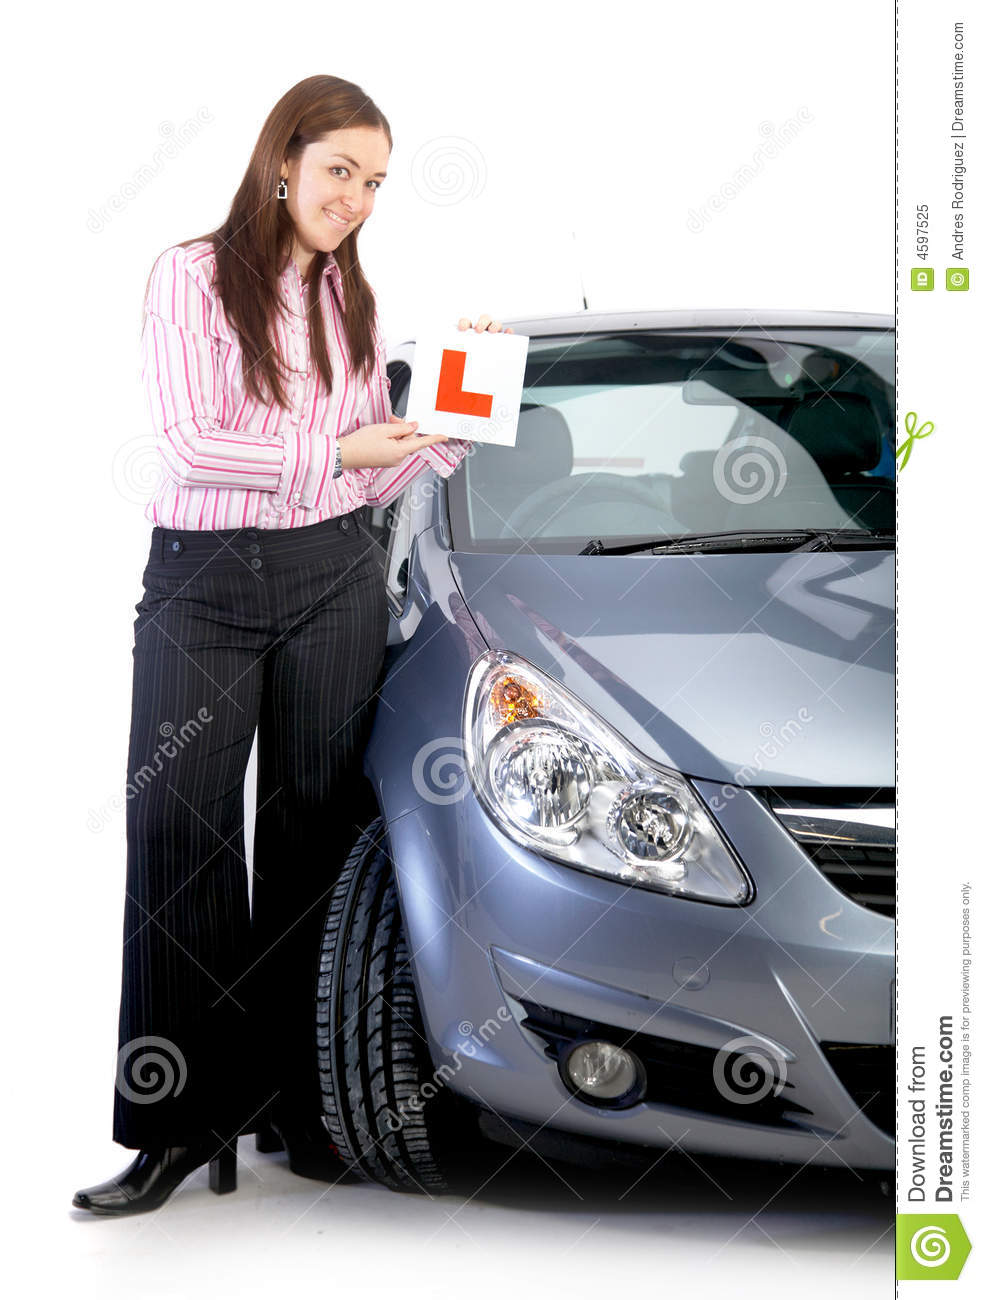 Learning Driving Licence Application लर न ग ड र ईव ग: Learning Driver Royalty Free Stock Photo